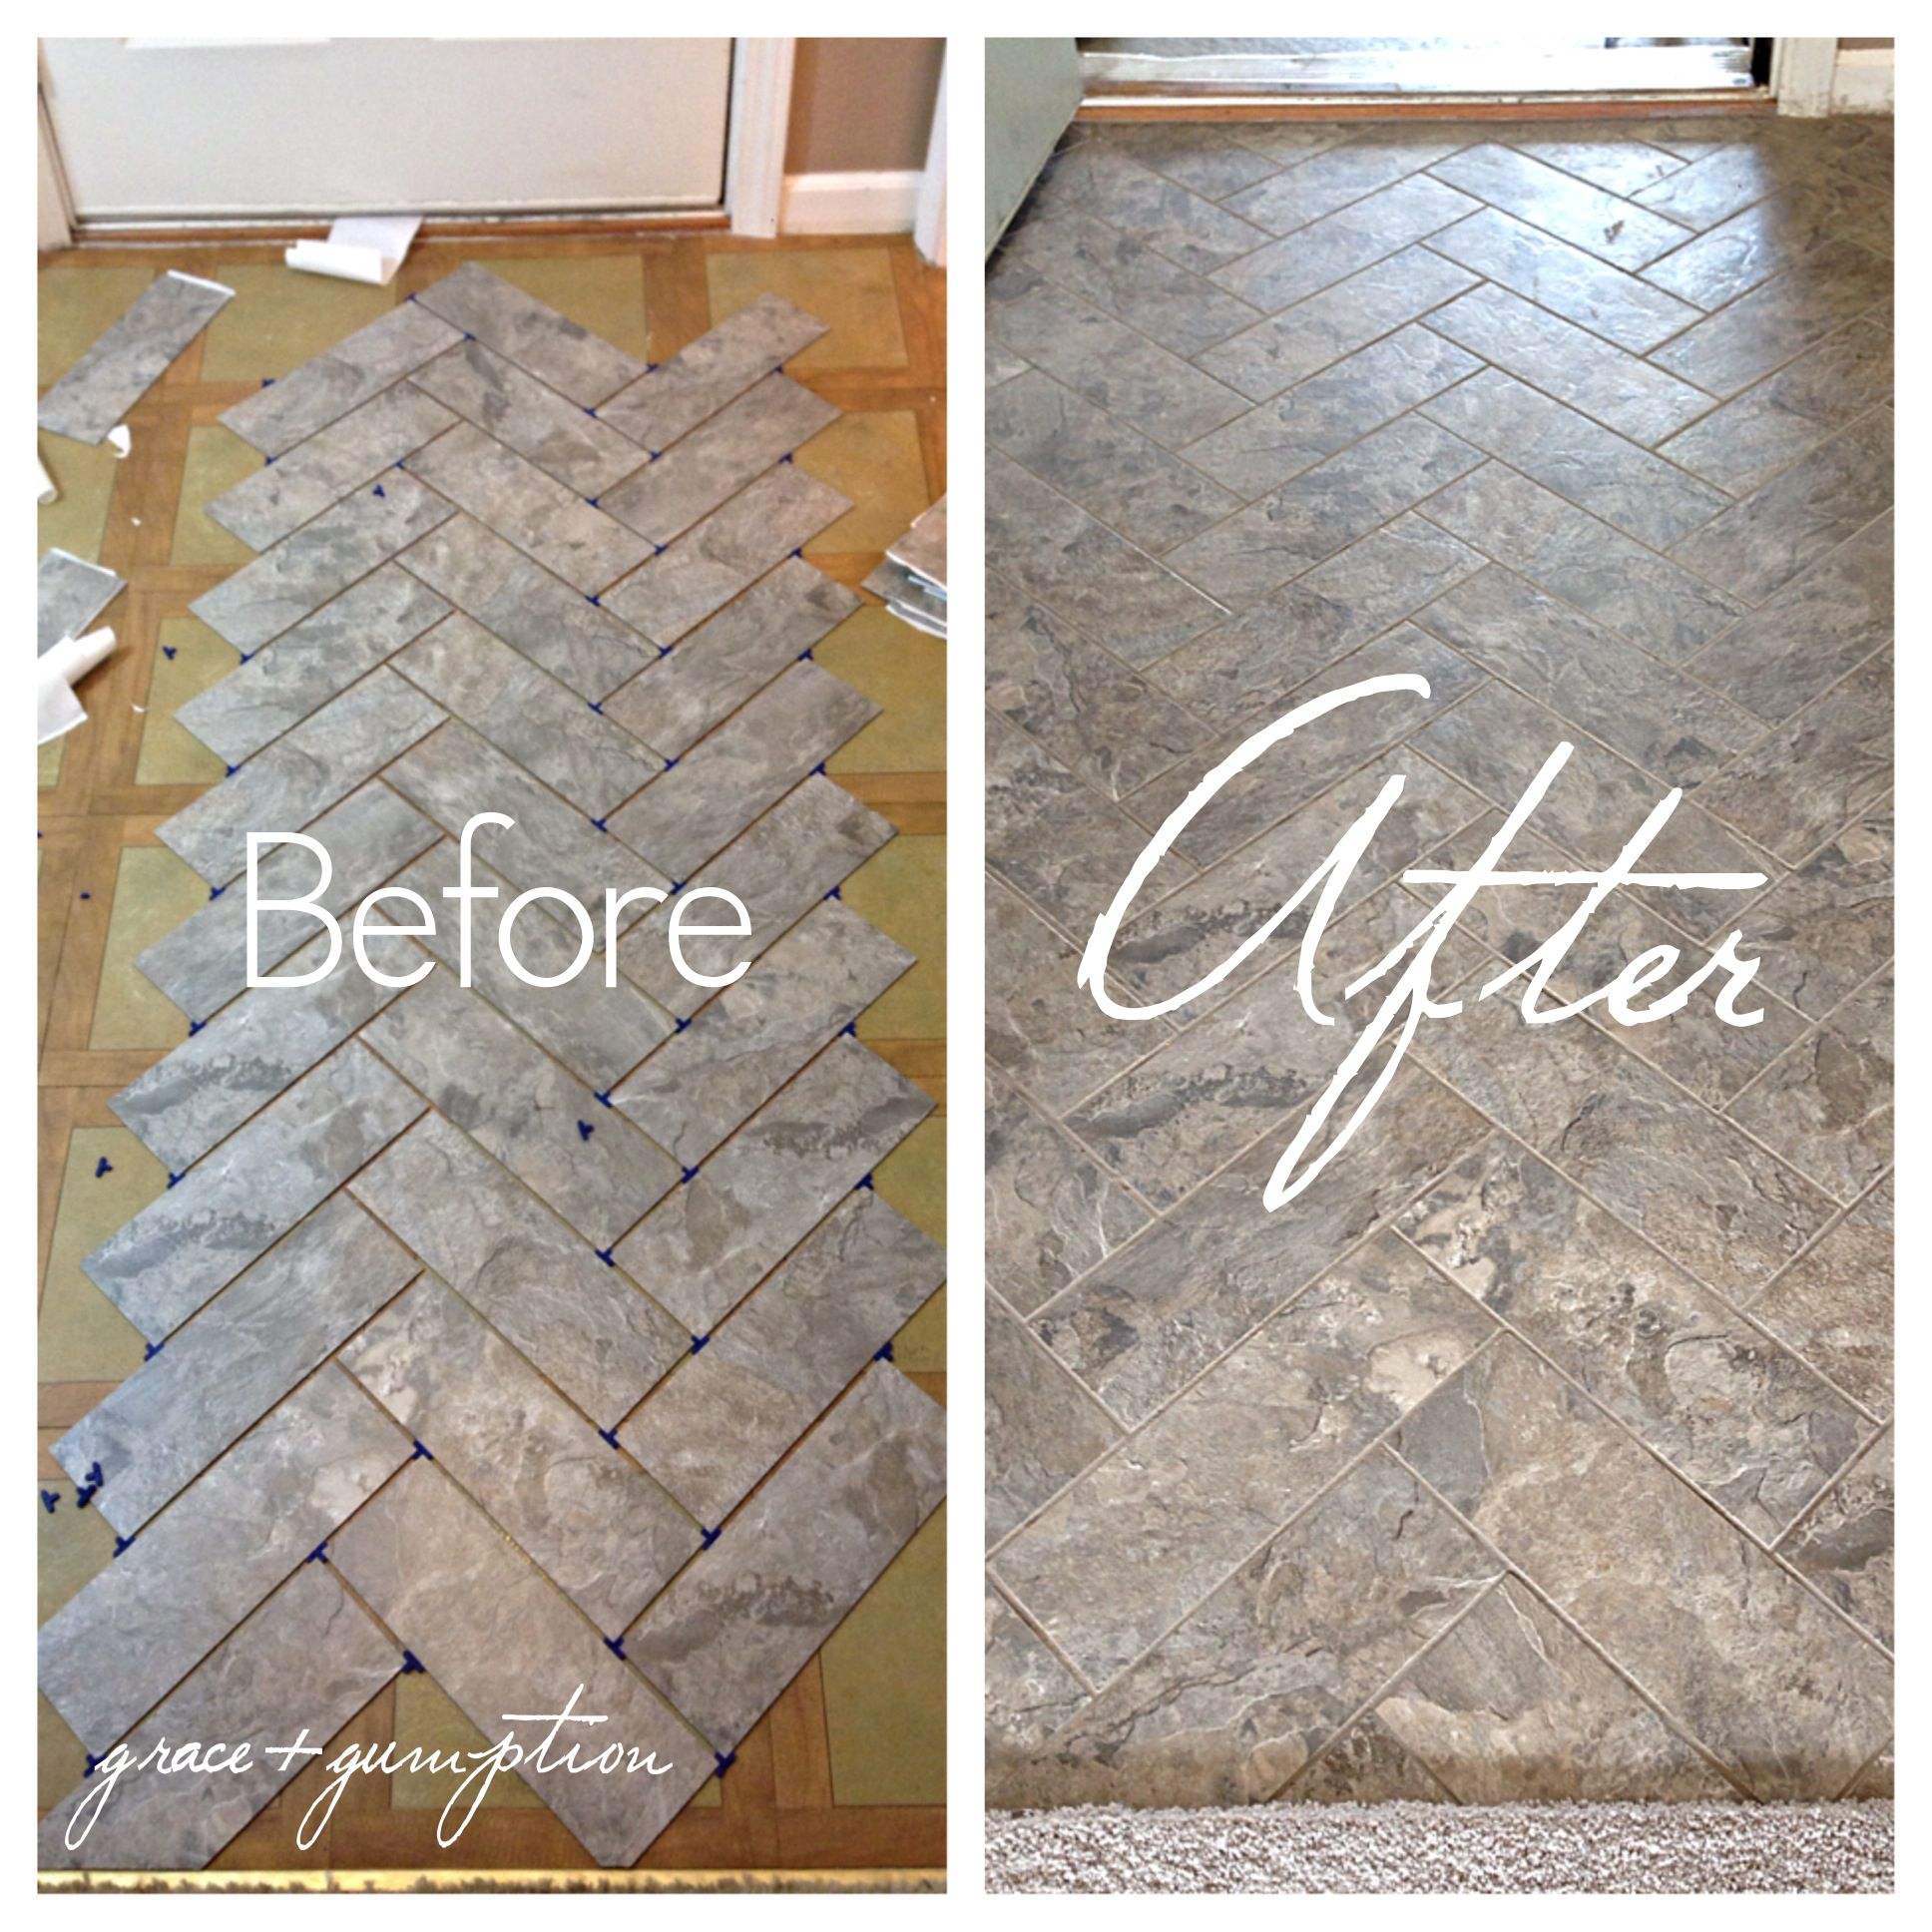 Sticky Tiles For Kitchen Floor Diy Herringbone Peel N Stick Tile Floor Before And After By Grace